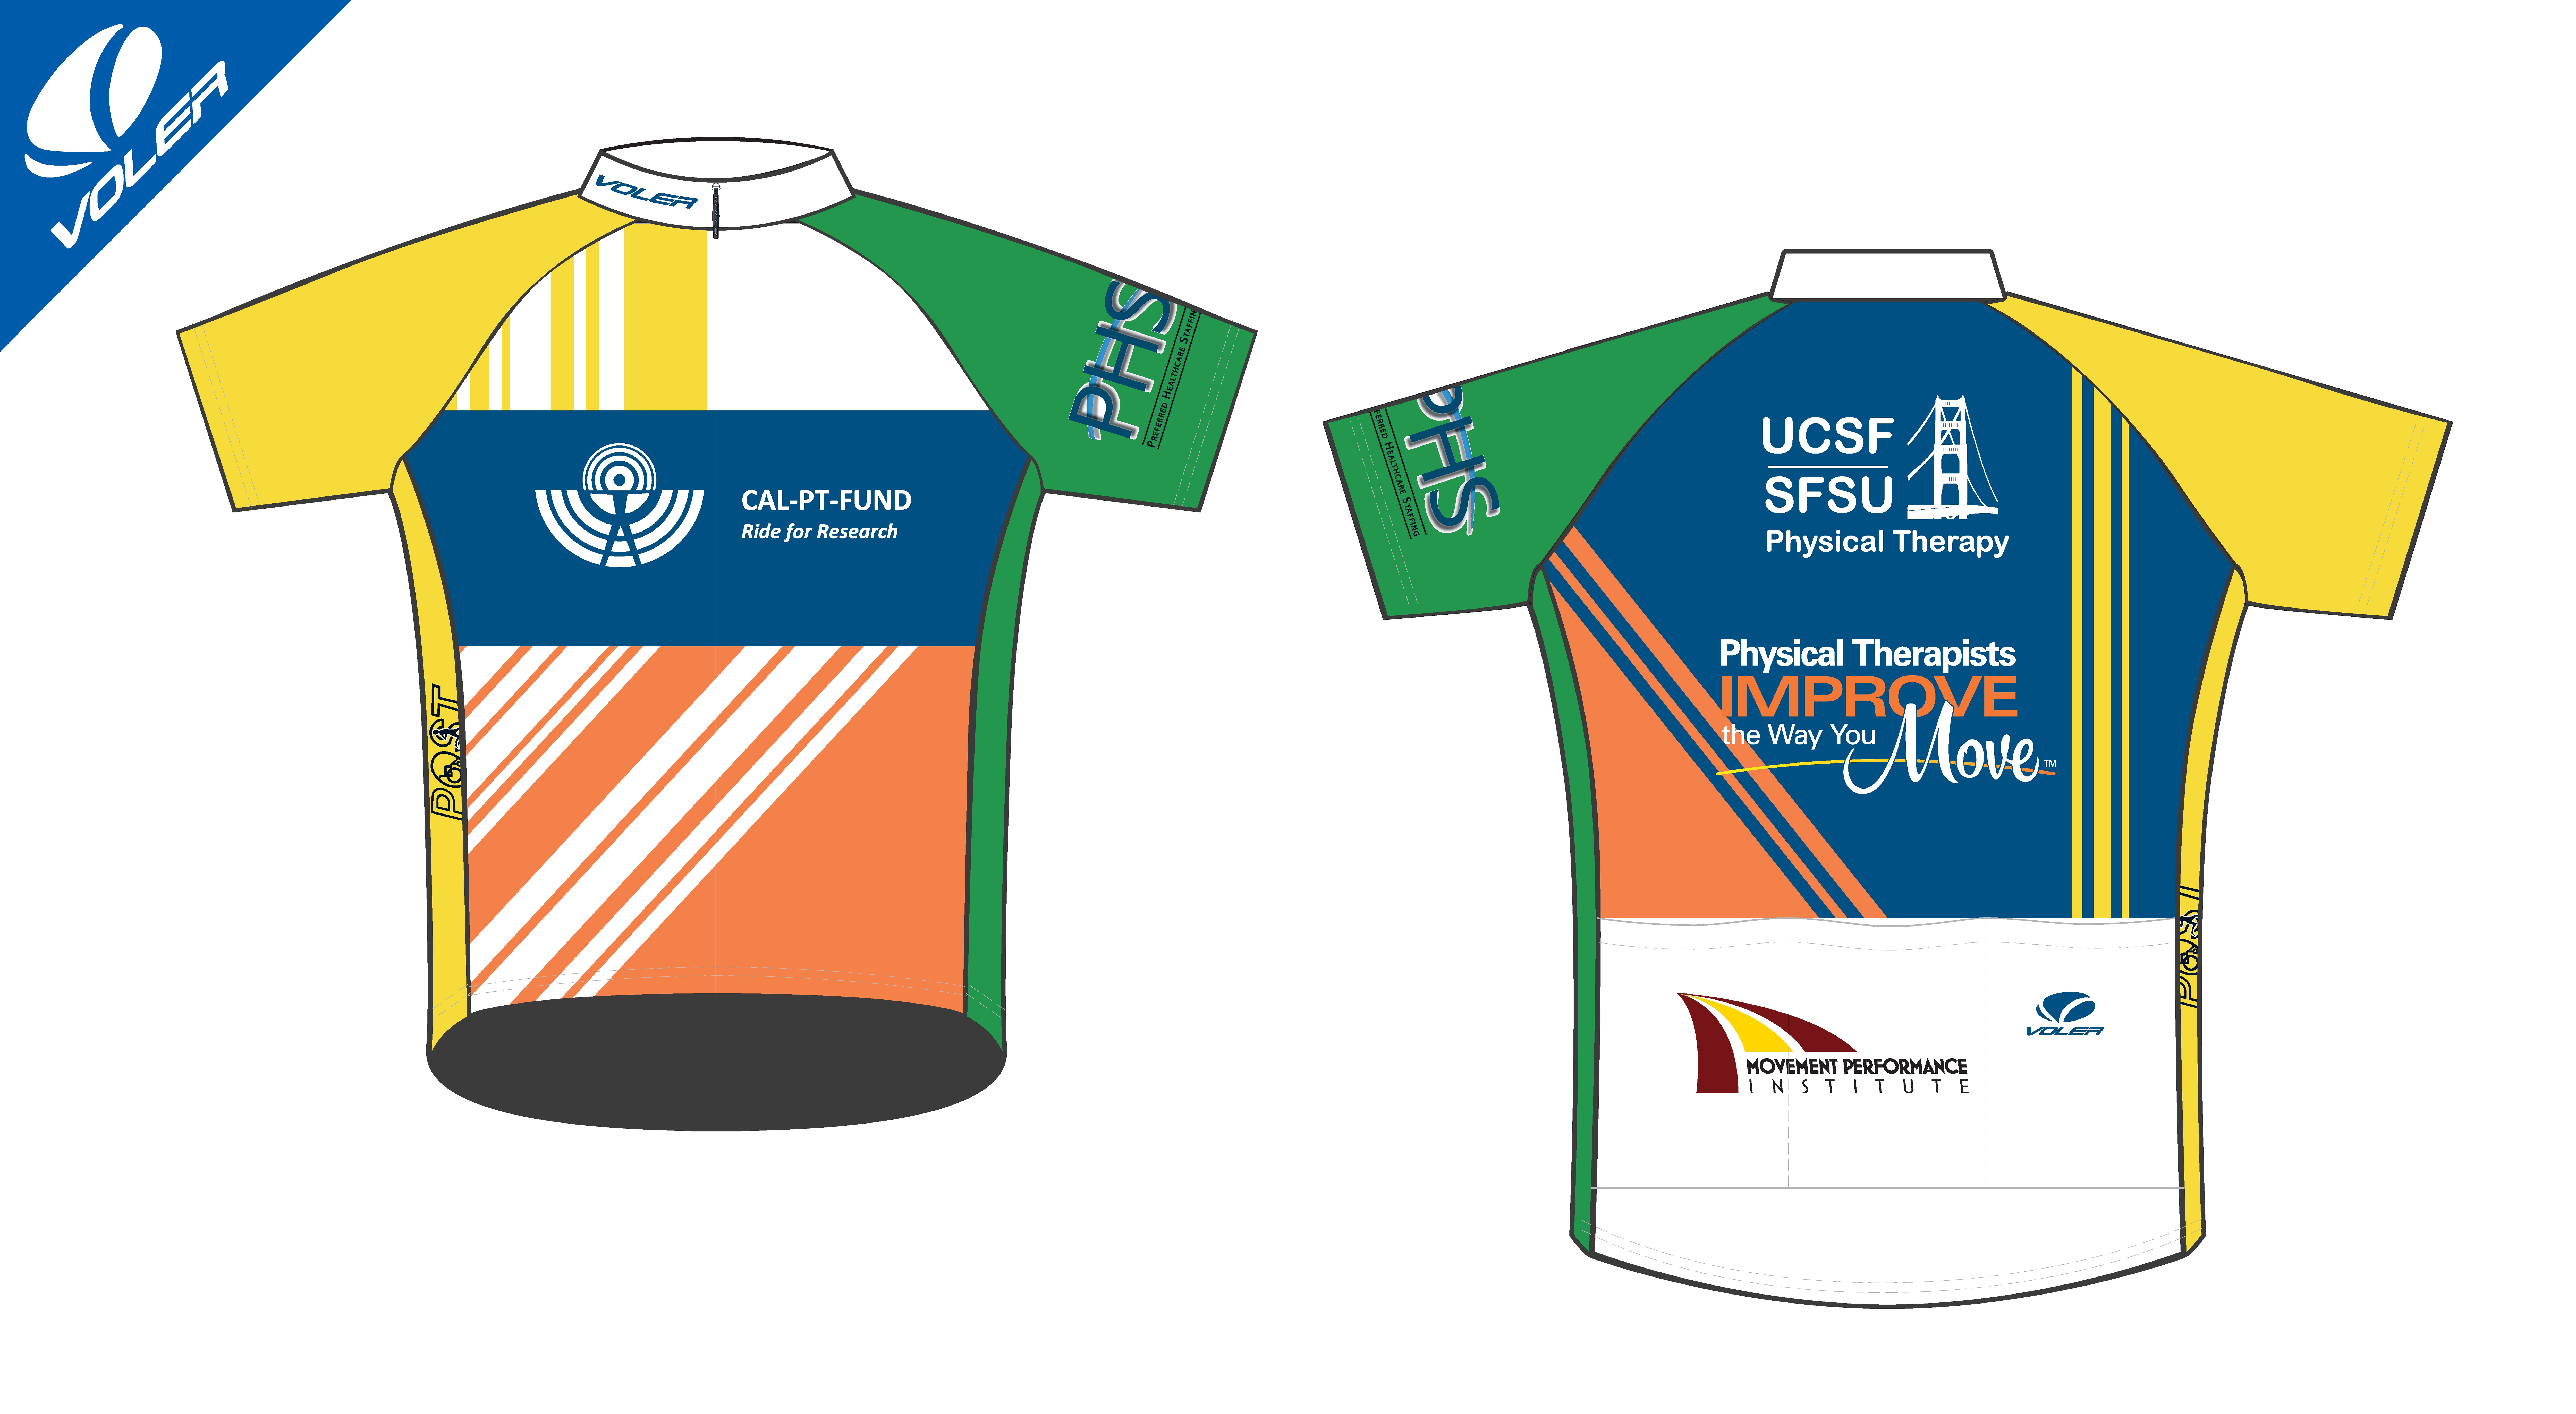 Board california physical therapy - Visit The Cpta Merchandise Store To Purchase An All New Cycling Jersey For Just 80 These Are High Quality Jerseys By Voler And Made In The Usa